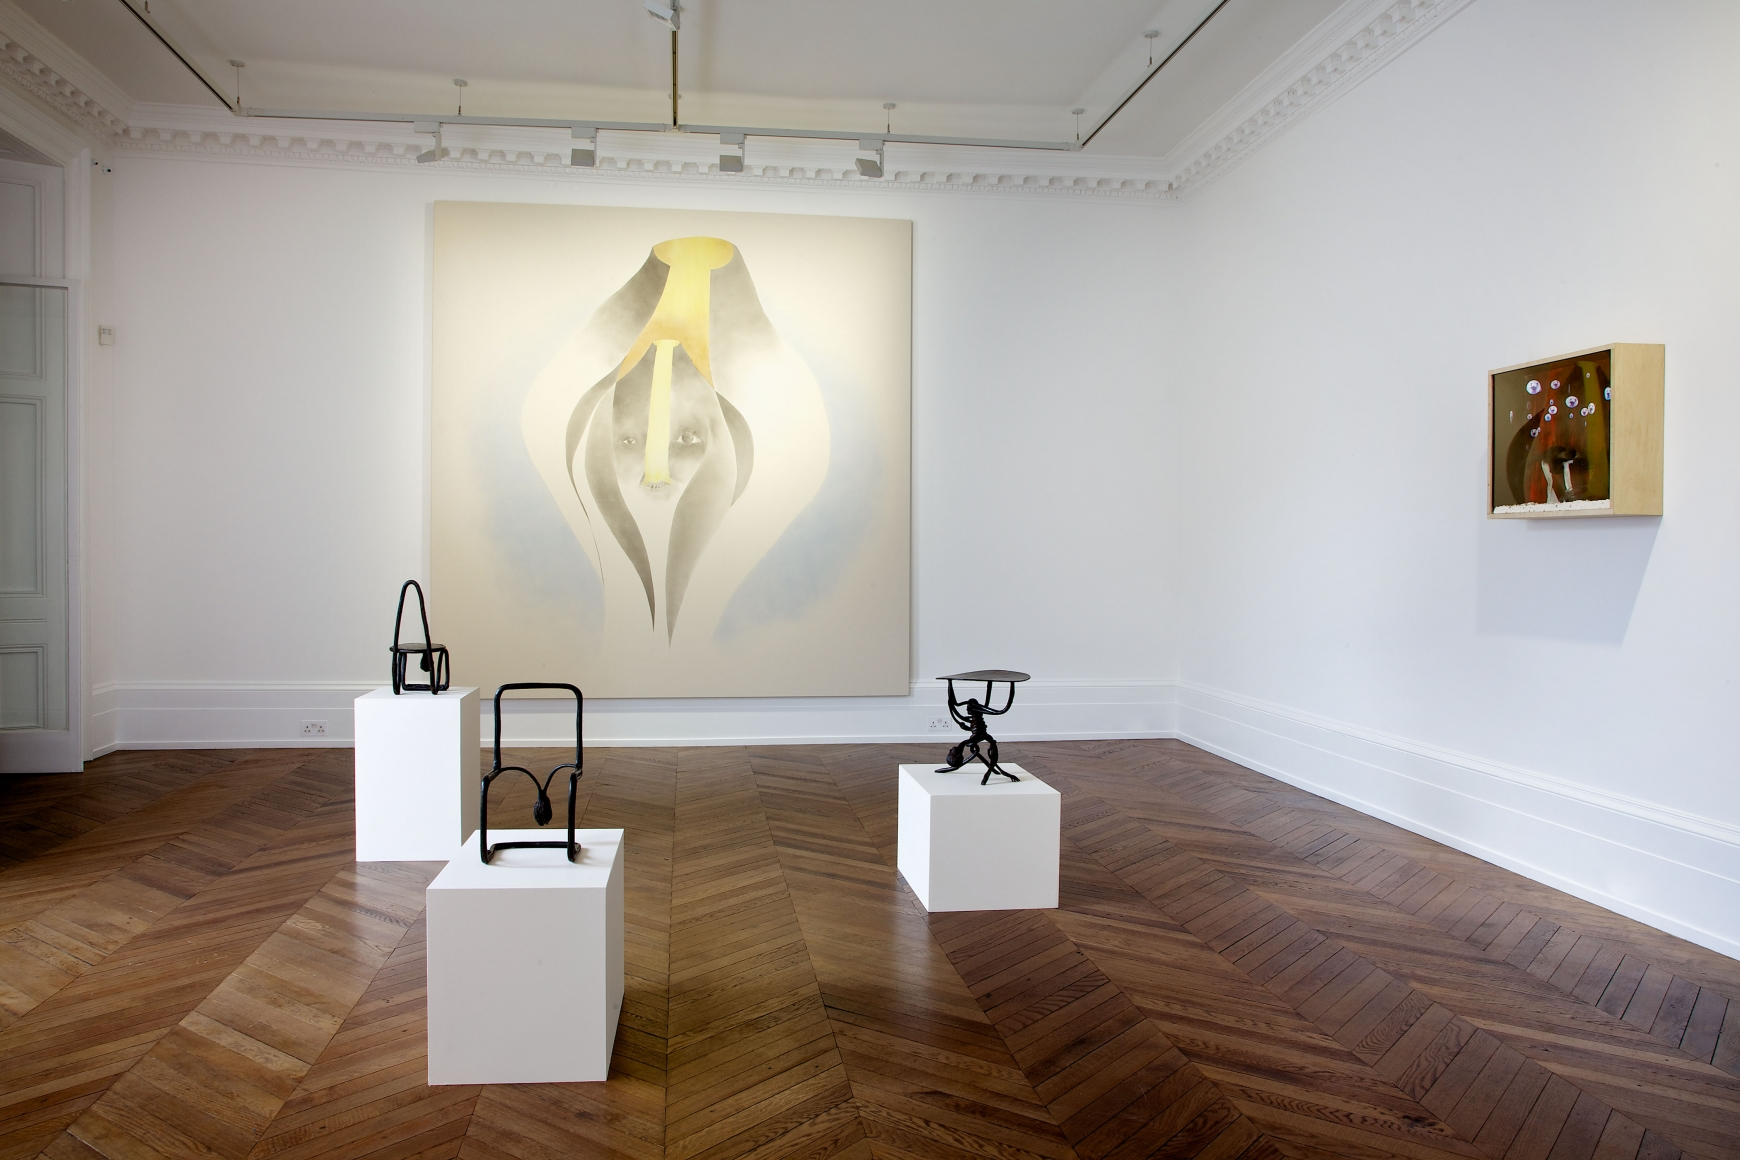 ENRICO DAVID New Works 17 September through 16 November 2013 MAYFAIR, LONDON, Installation View 4